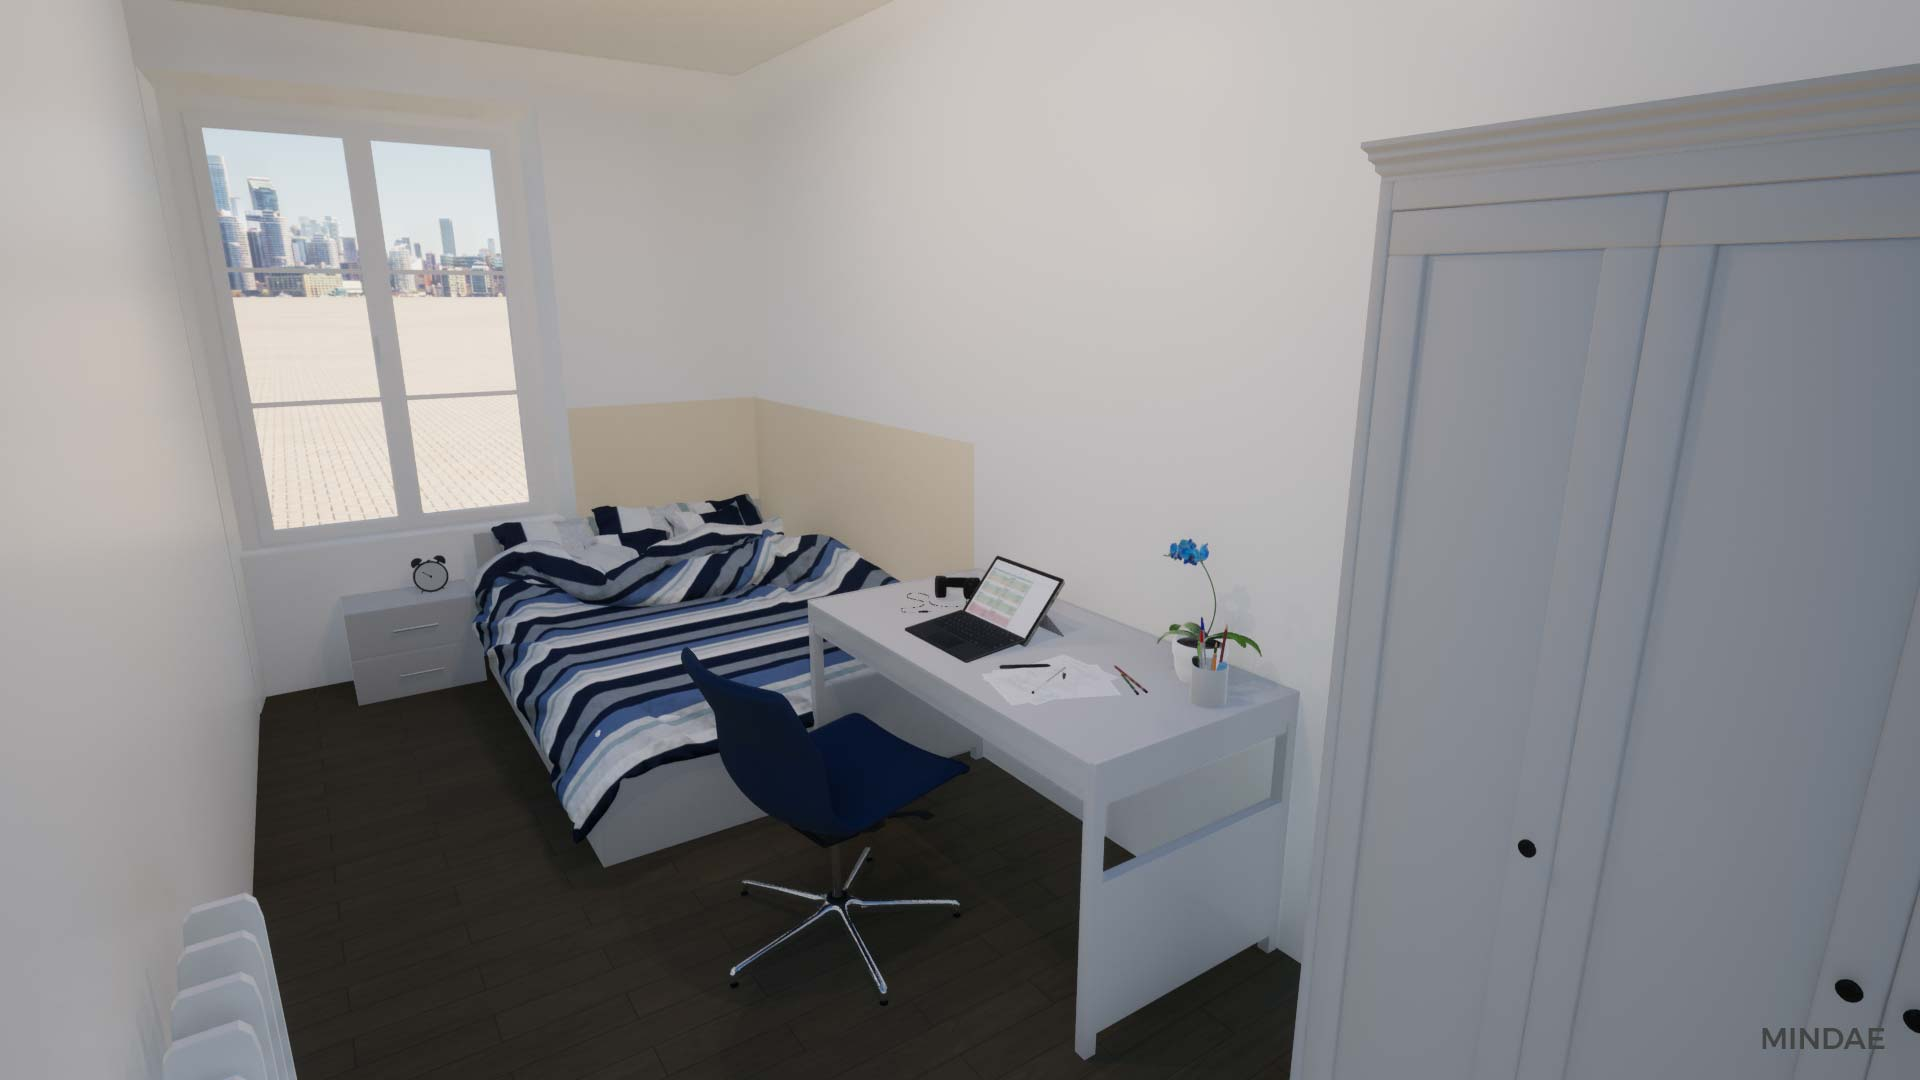 Mindae_3D_appartement_caen_saint_laurent_investisseur_colocation_airbnb_locatif_renovation_F2_F3-(7)